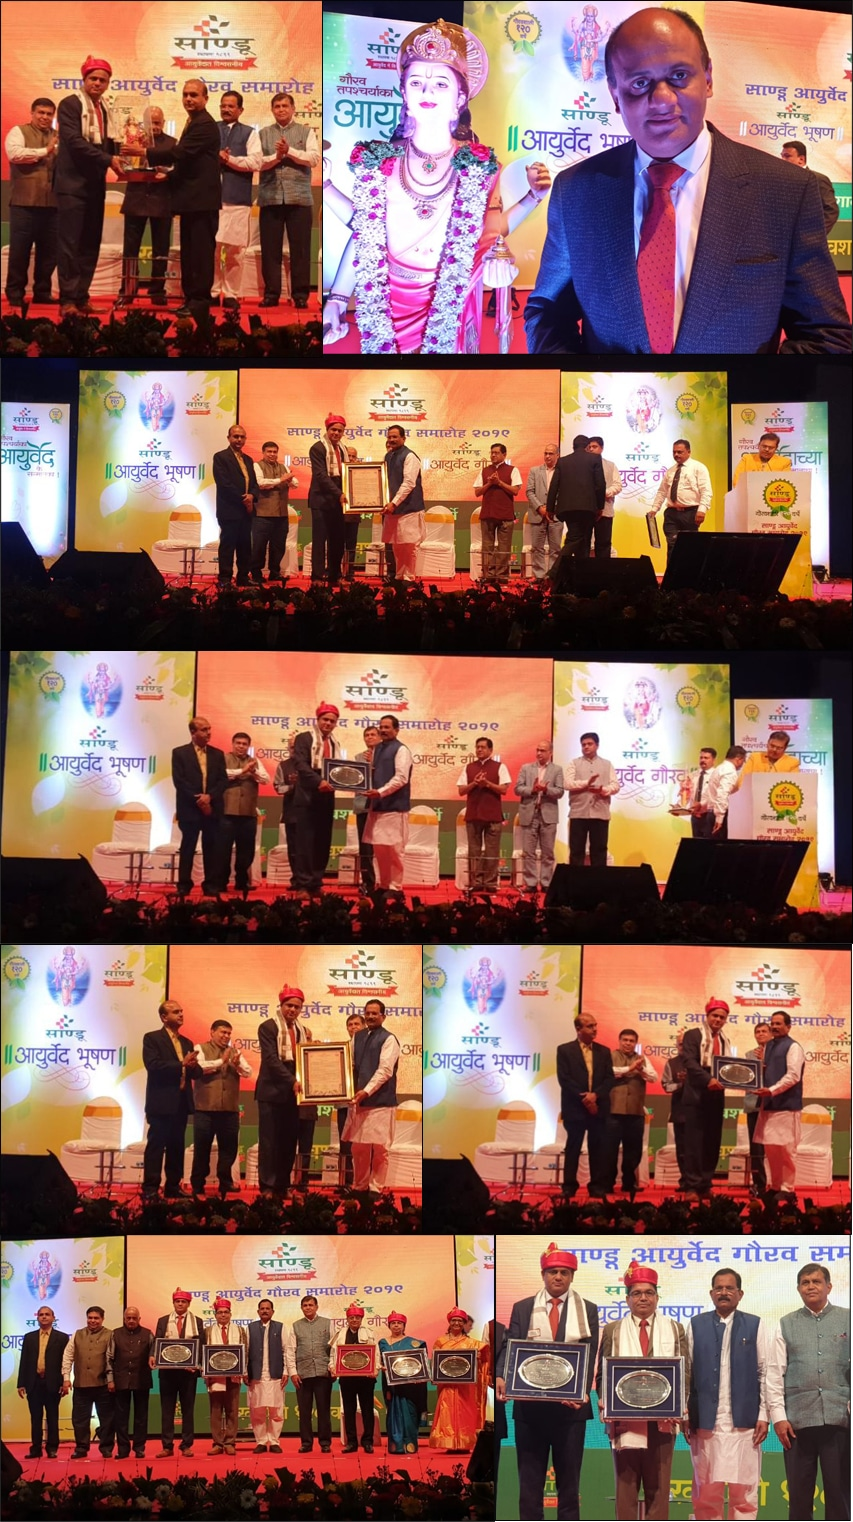 Dr. Vikram Chauhan Received Ayurveda Gaurav Award for outstanding work in the field of Ayurveda by honorable AYUSH Minister and Minister of Defence for State  - Sh. Shripad Yesso Naik & Sandu Company Directors at Pune, Maharashtra